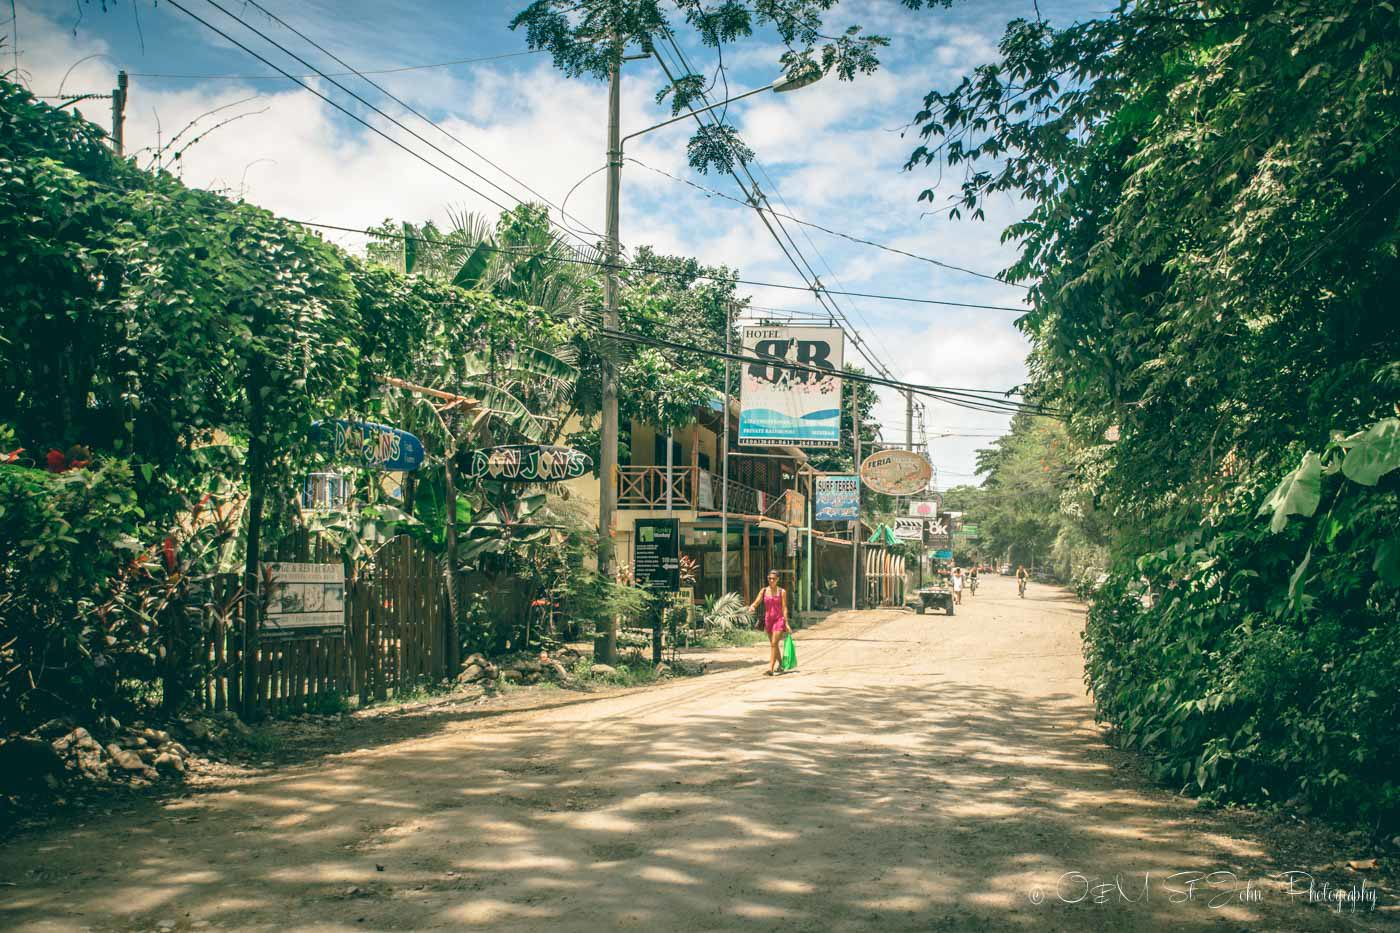 Backpacking in Costa Rica: Main road in Santa Teresa, live in costa rica